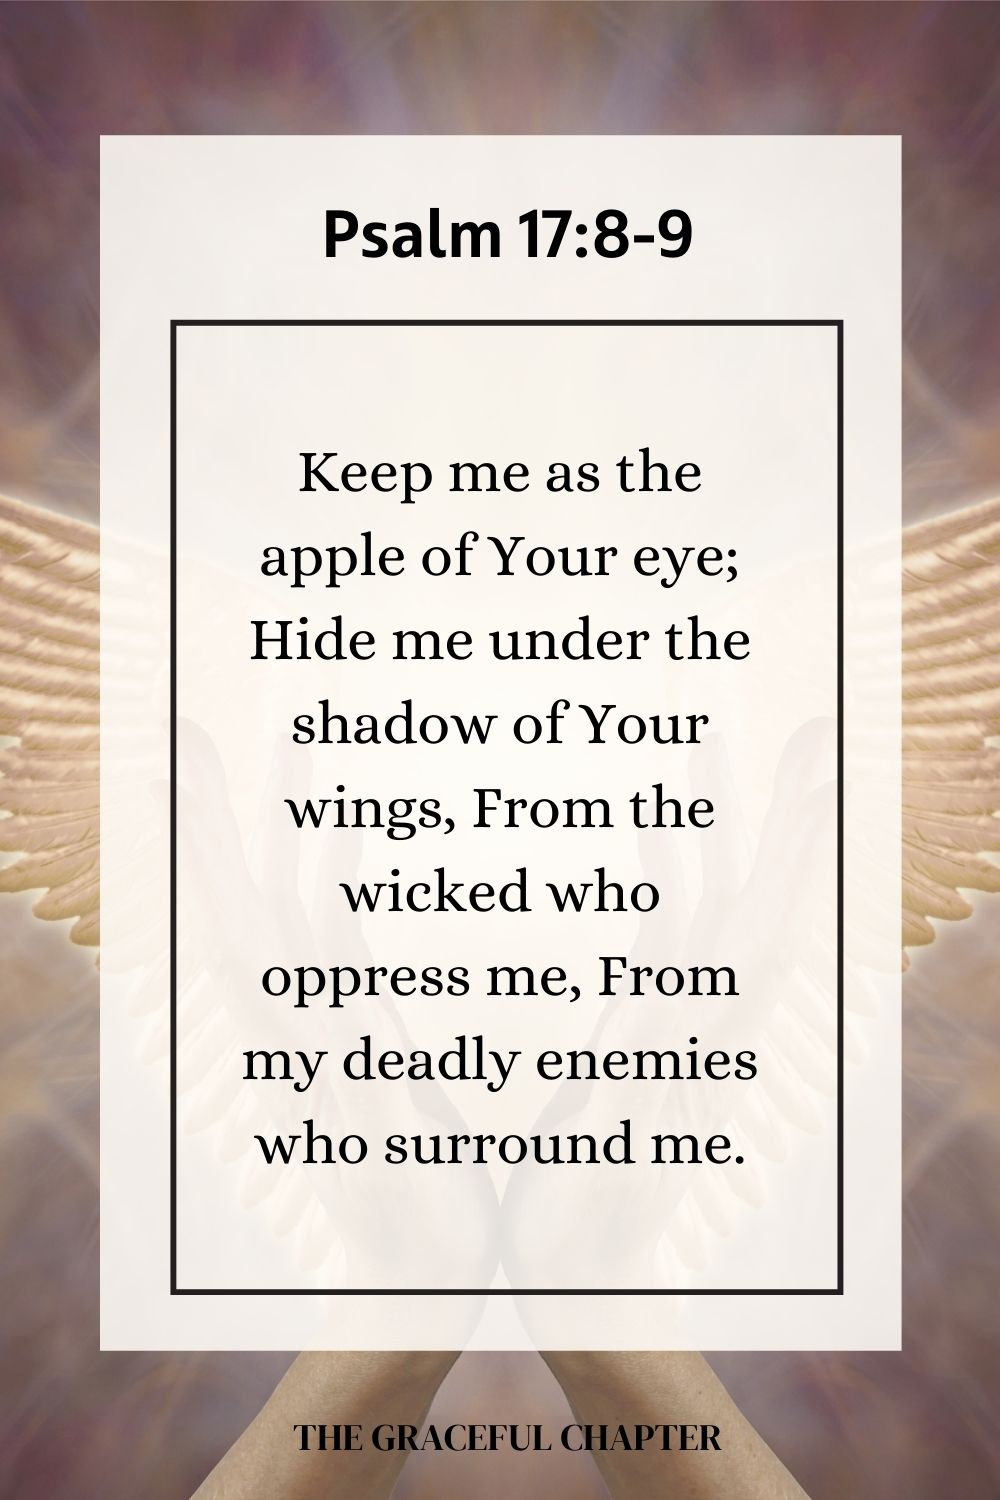 Keep me as the apple of Your eye; Hide me under the shadow of Your wings, From the wicked who oppress me, From my deadly enemies who surround me. Psalm 17:8-9